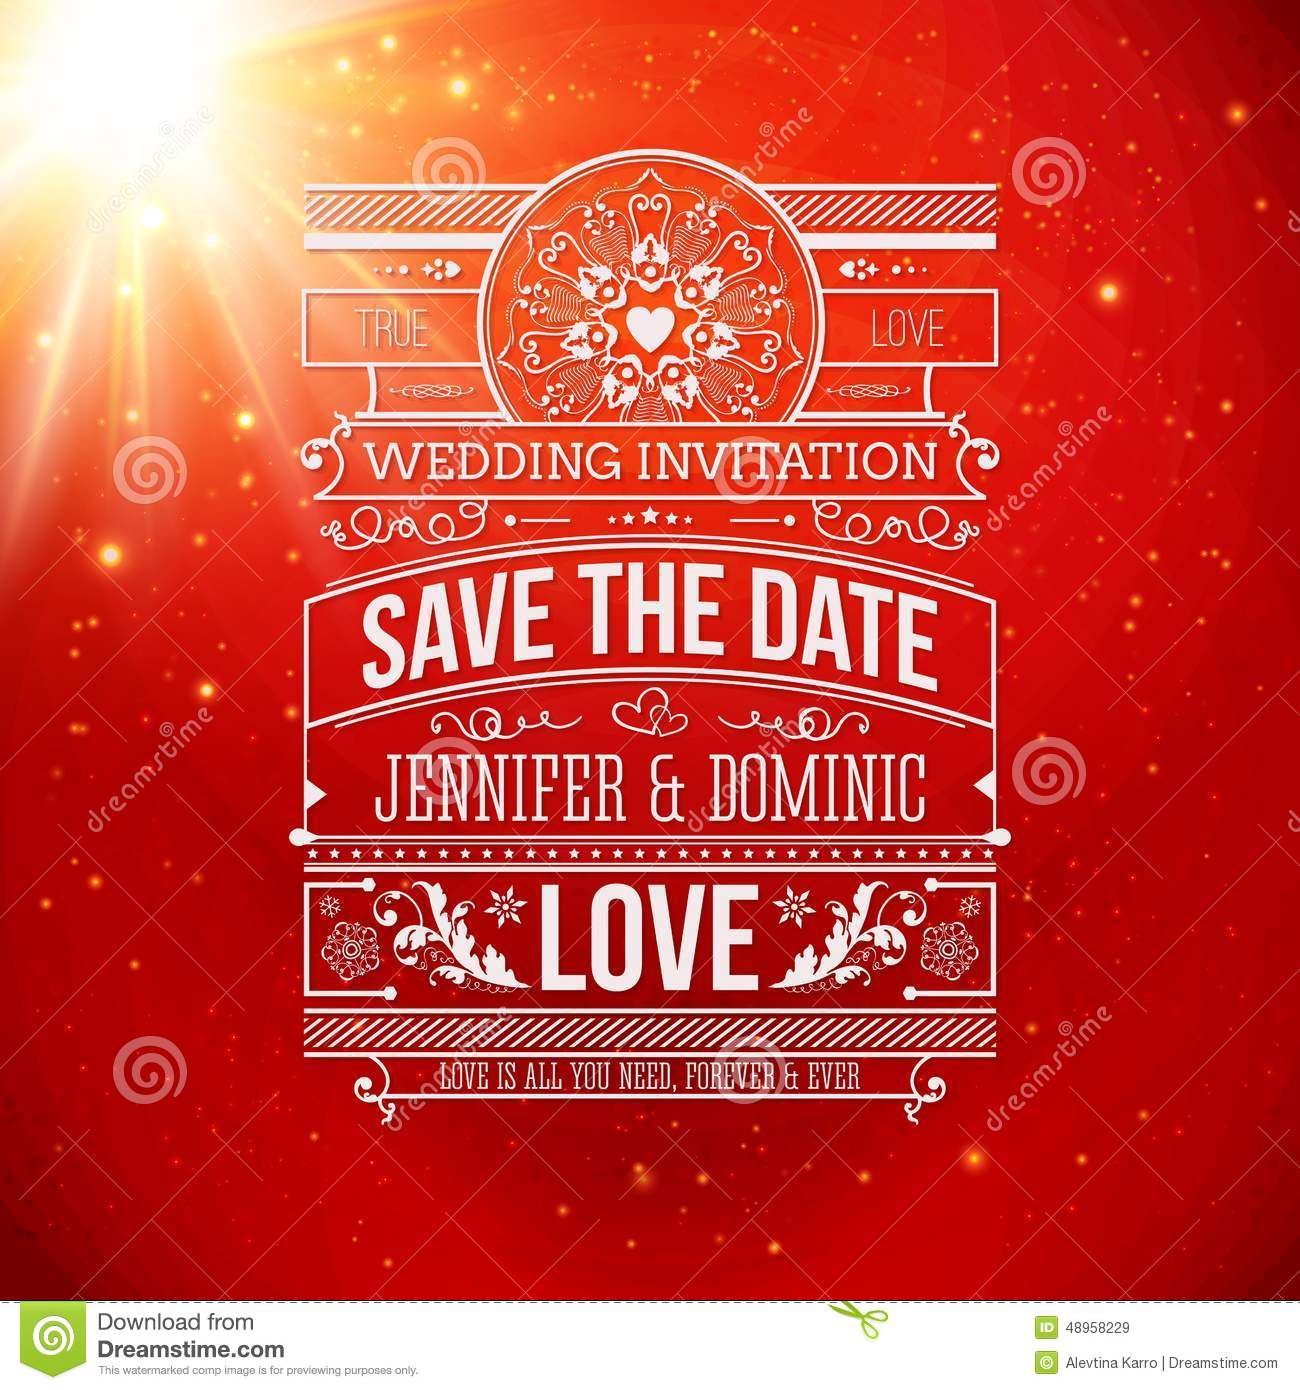 Save The Date For Personal Holiday. Wedding Stock Vector